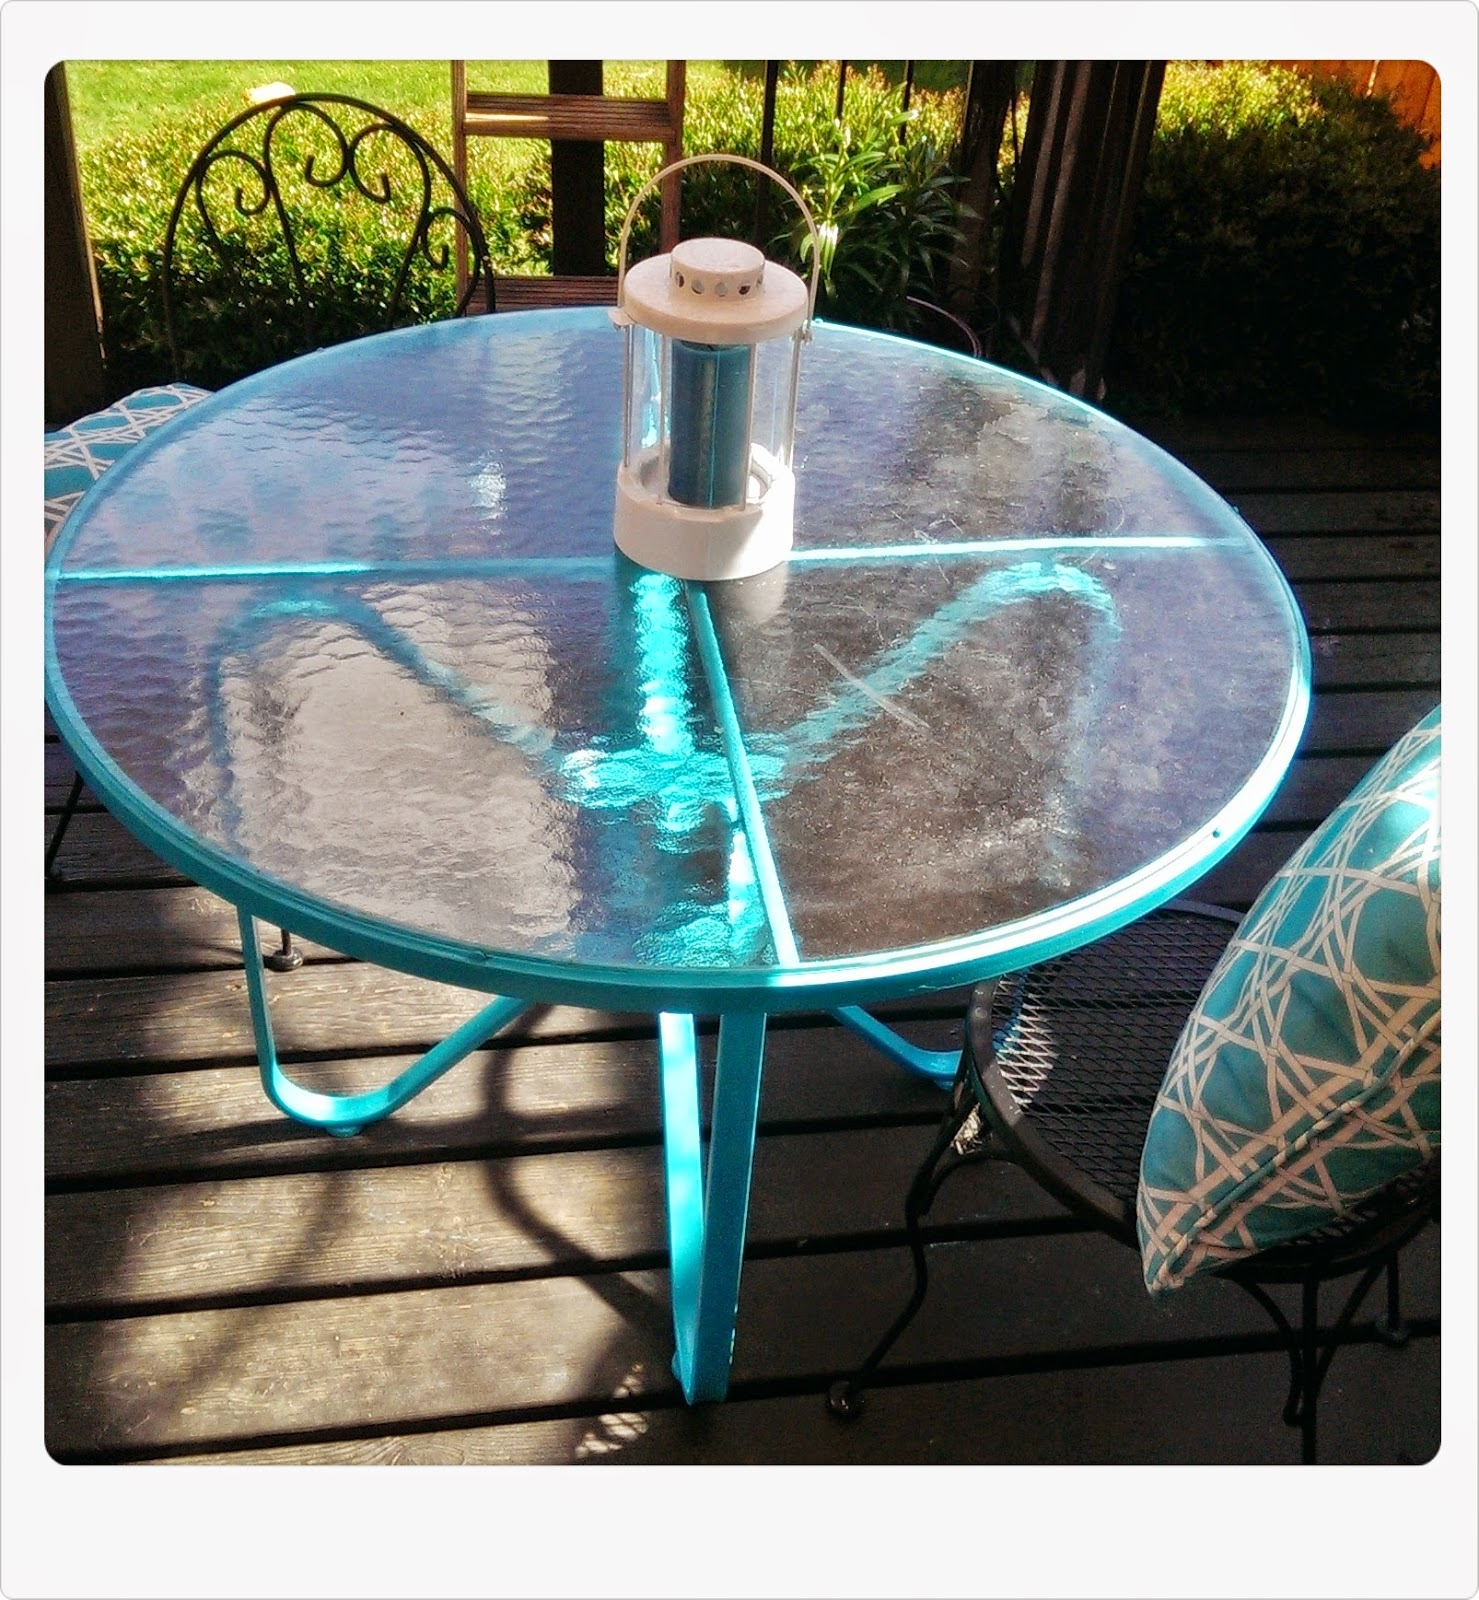 Meg made Creations Spray Paint Patio Table From Rust Stained to